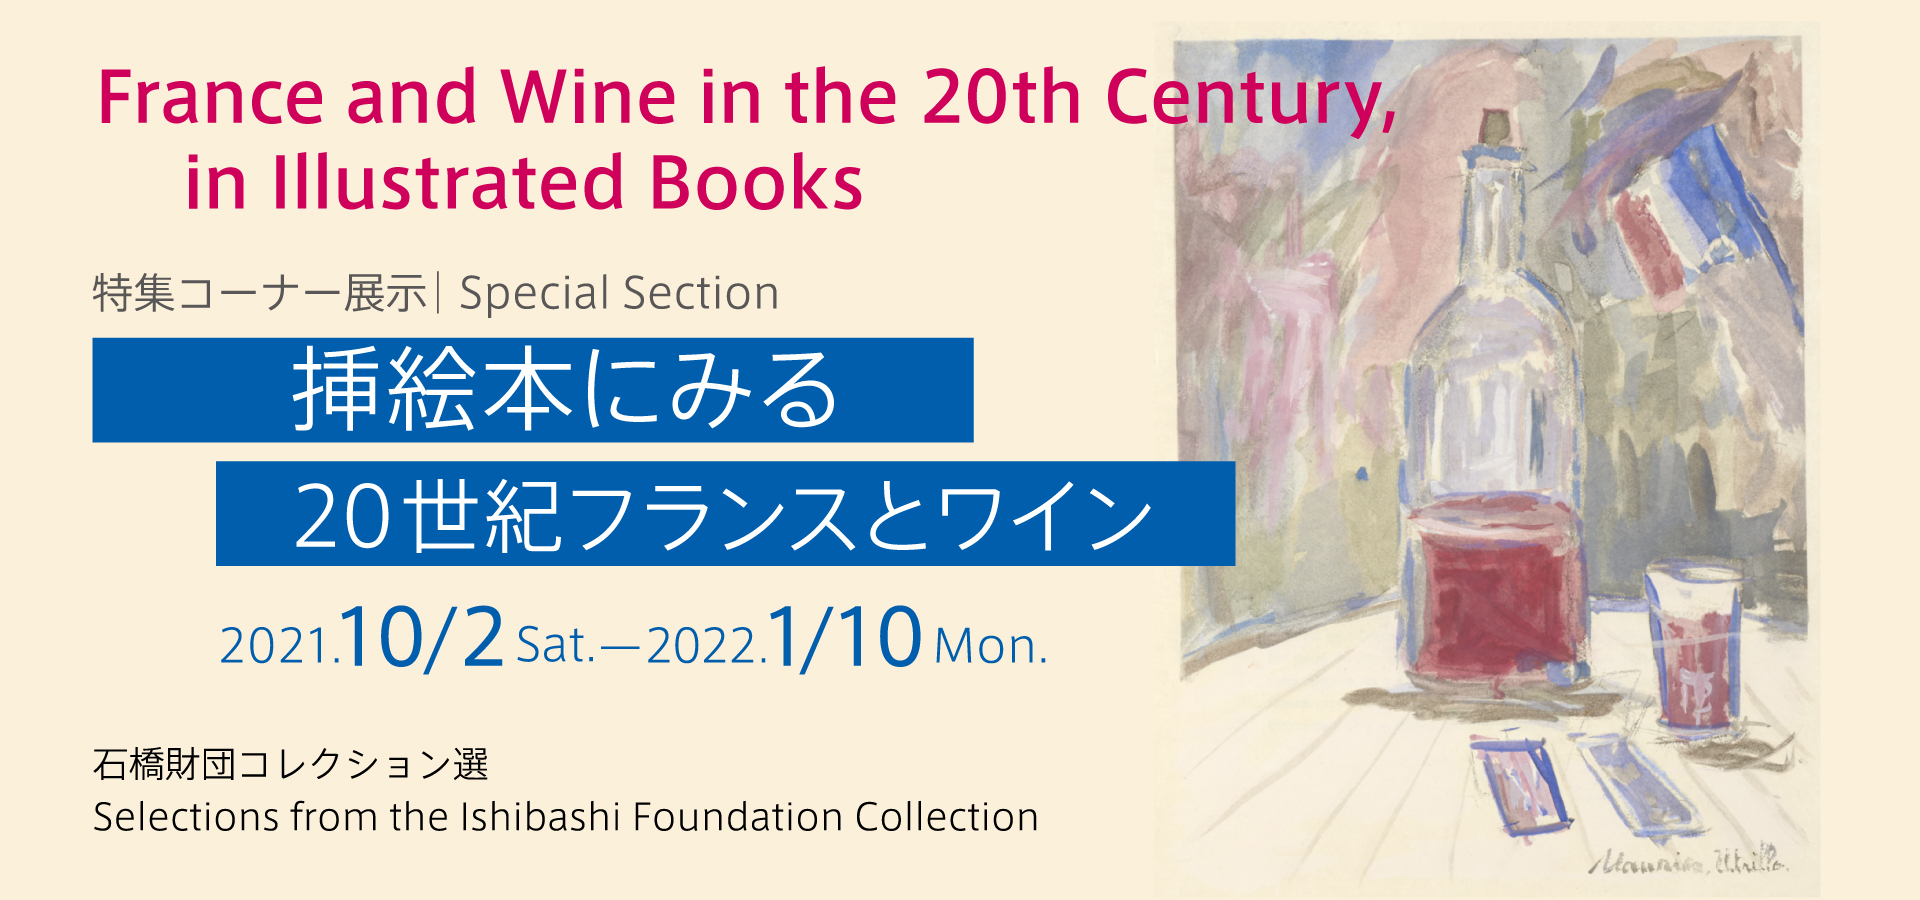 Selections from the Ishibashi Foundation Collection Special Section France and Wine in the 20th Century, in Illustrated Books